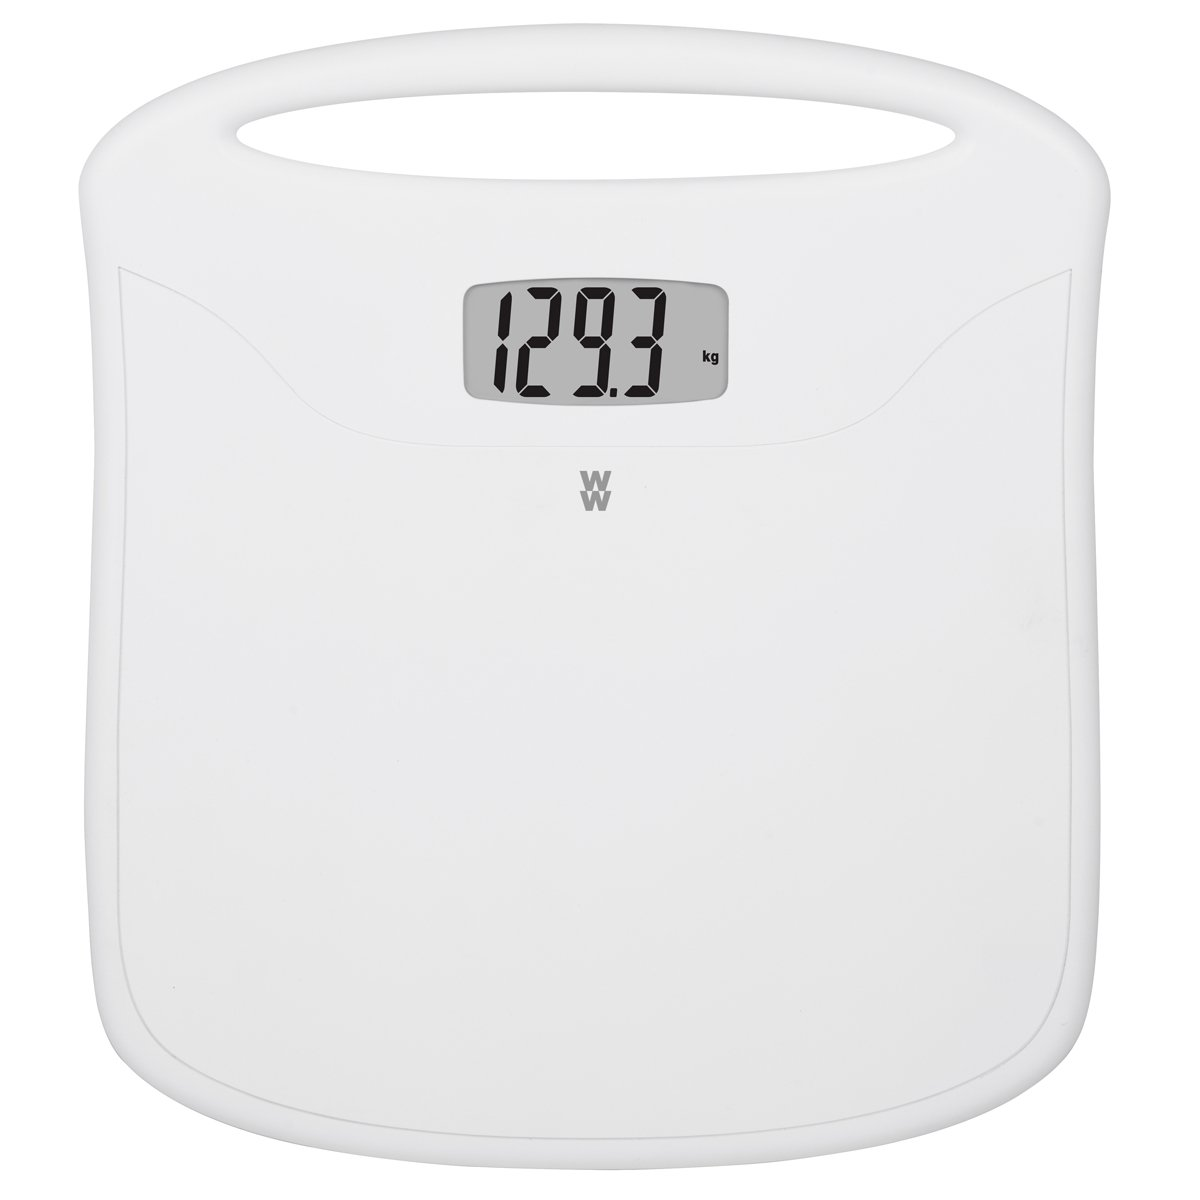 Weight Watchers Digital portable scale with handle, 3.3 lb, White Manufacturer WW12C